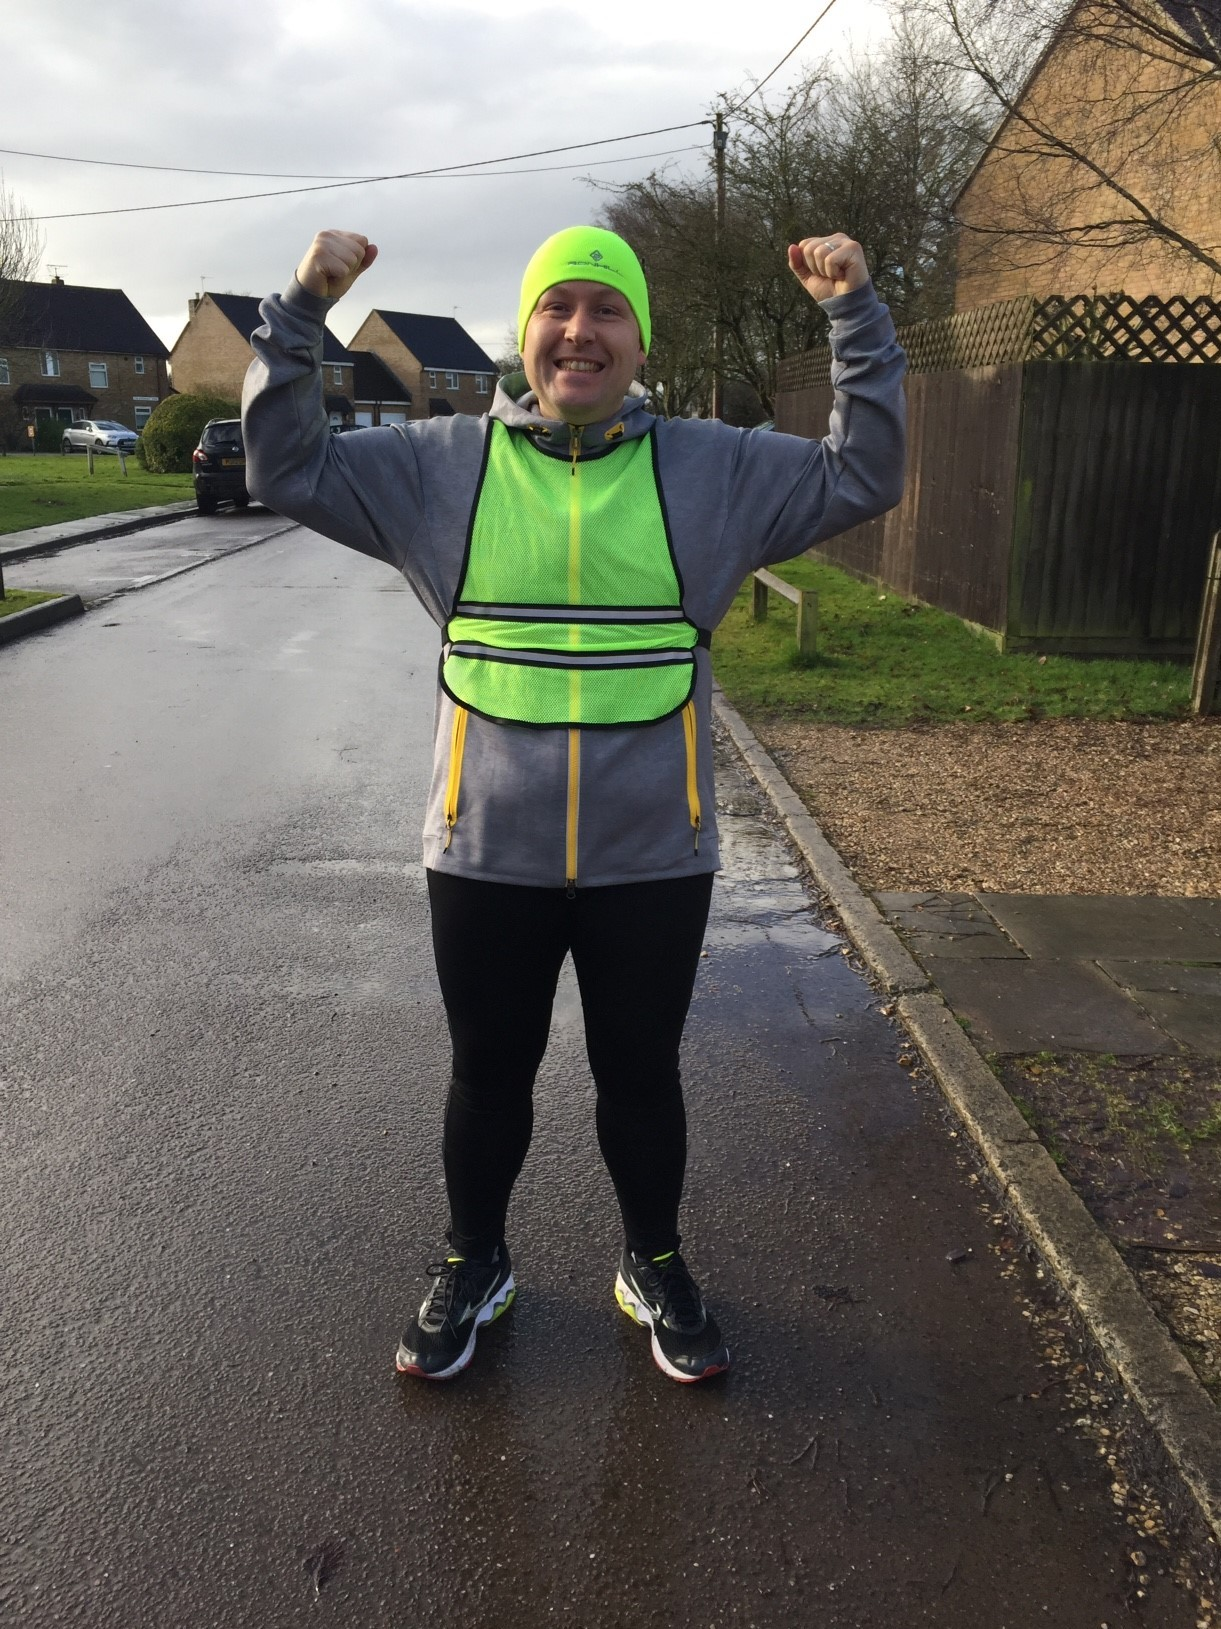 Richard Smith from Calne is running the London Marathon for the British Heart Foundation